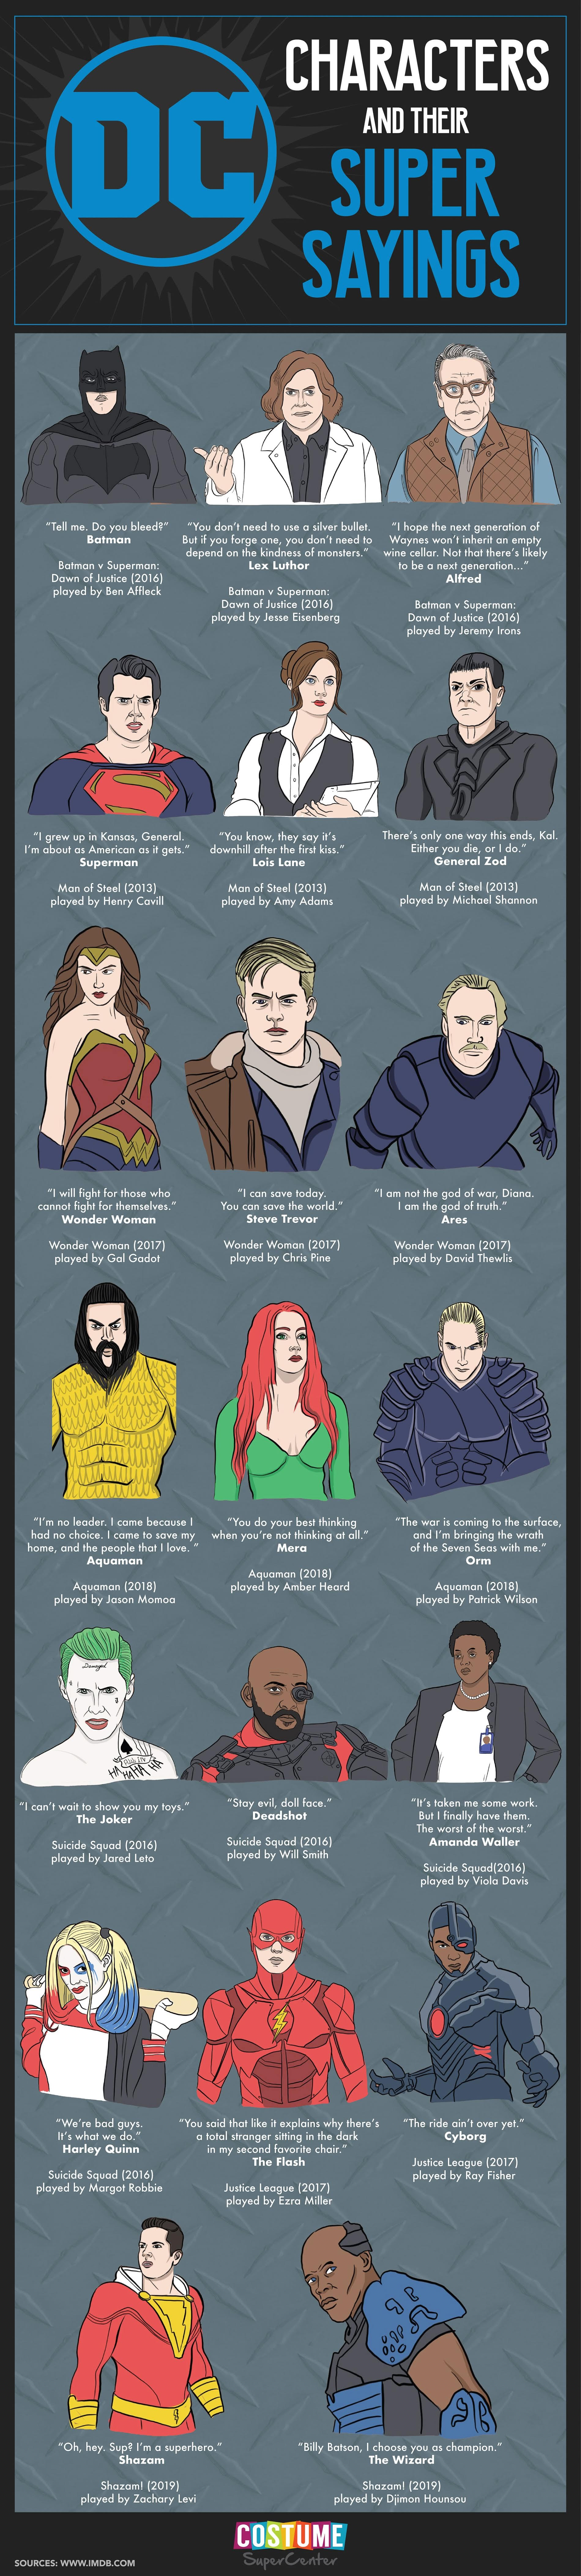 DC Character And Their Super Sayings #Infographic